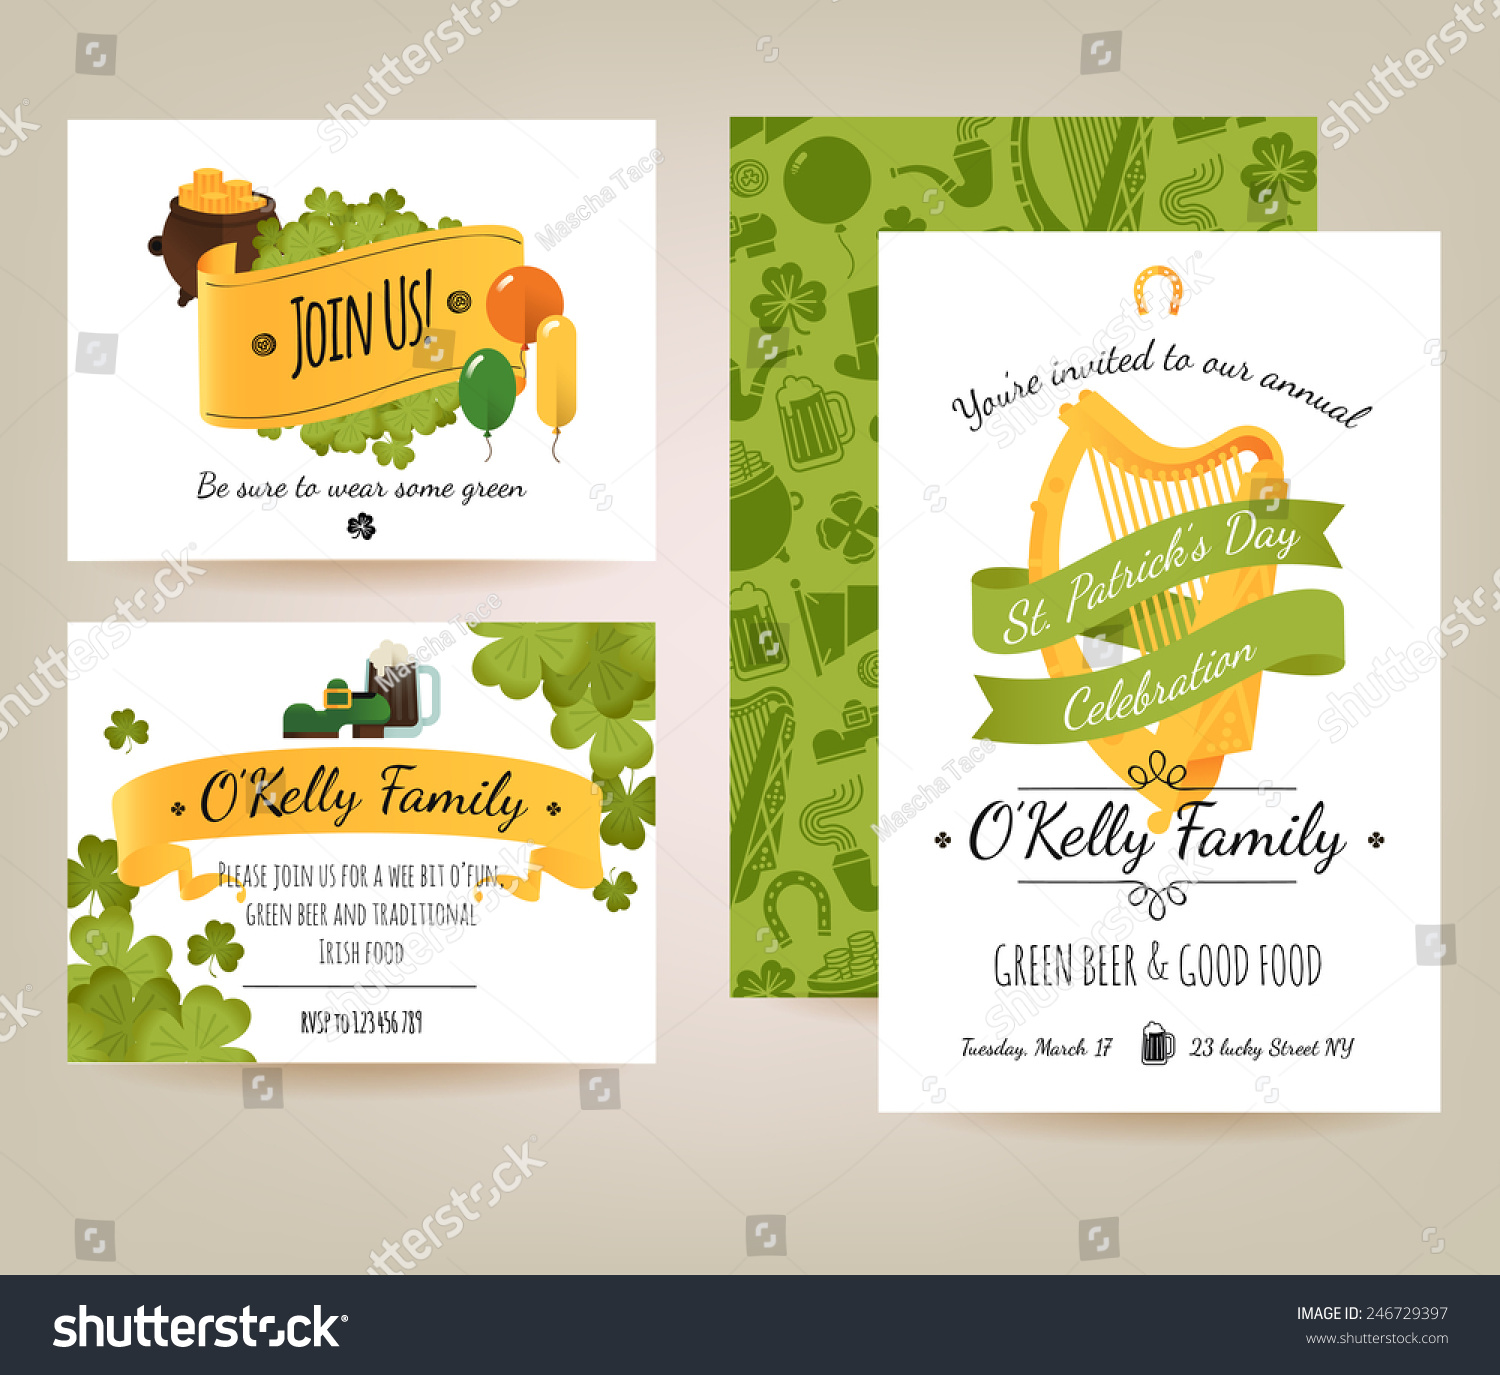 Vector modern flat design invitation card stock vector 246729397 vector modern flat design invitation card set on saint patricks day annual celebration including background pattern stopboris Choice Image